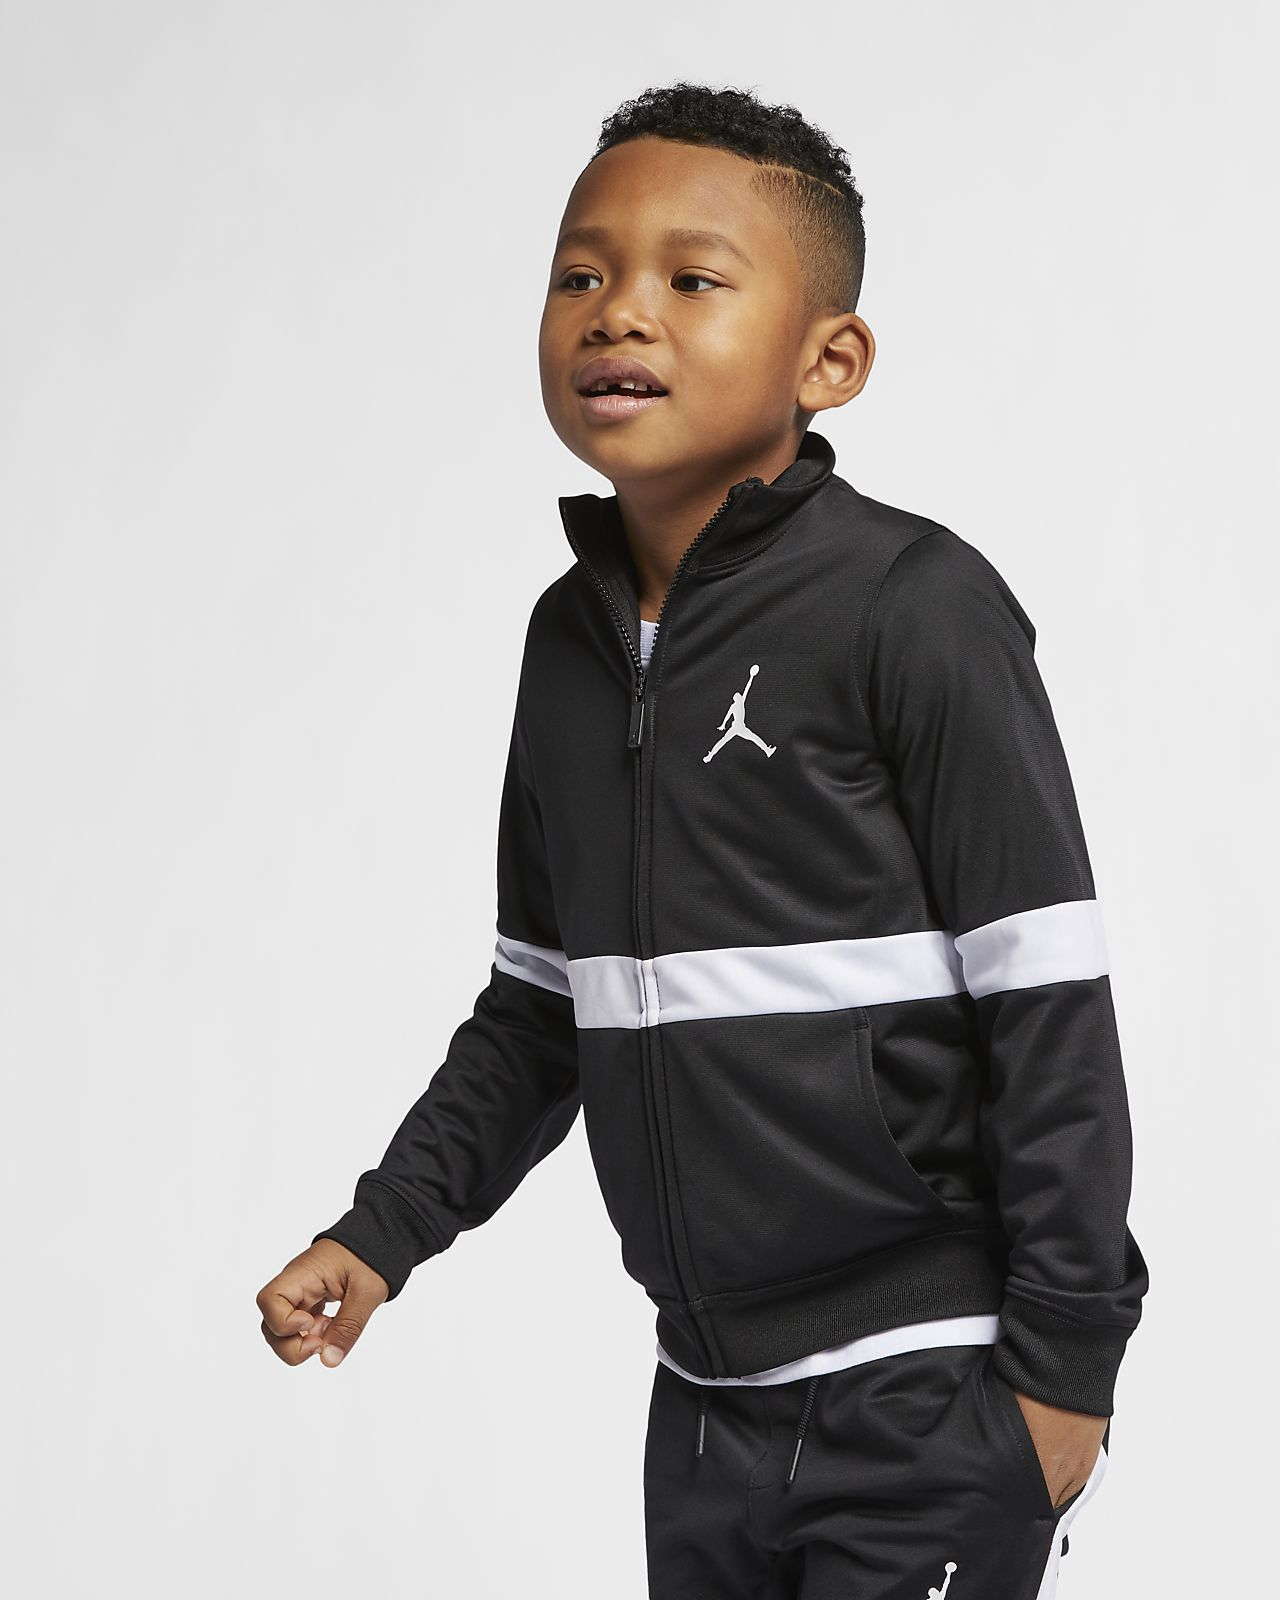 59b1d084e91ee2 Jordan Sportswear Diamond Younger Kids  Full-Zip Jacket. Nike.com NL